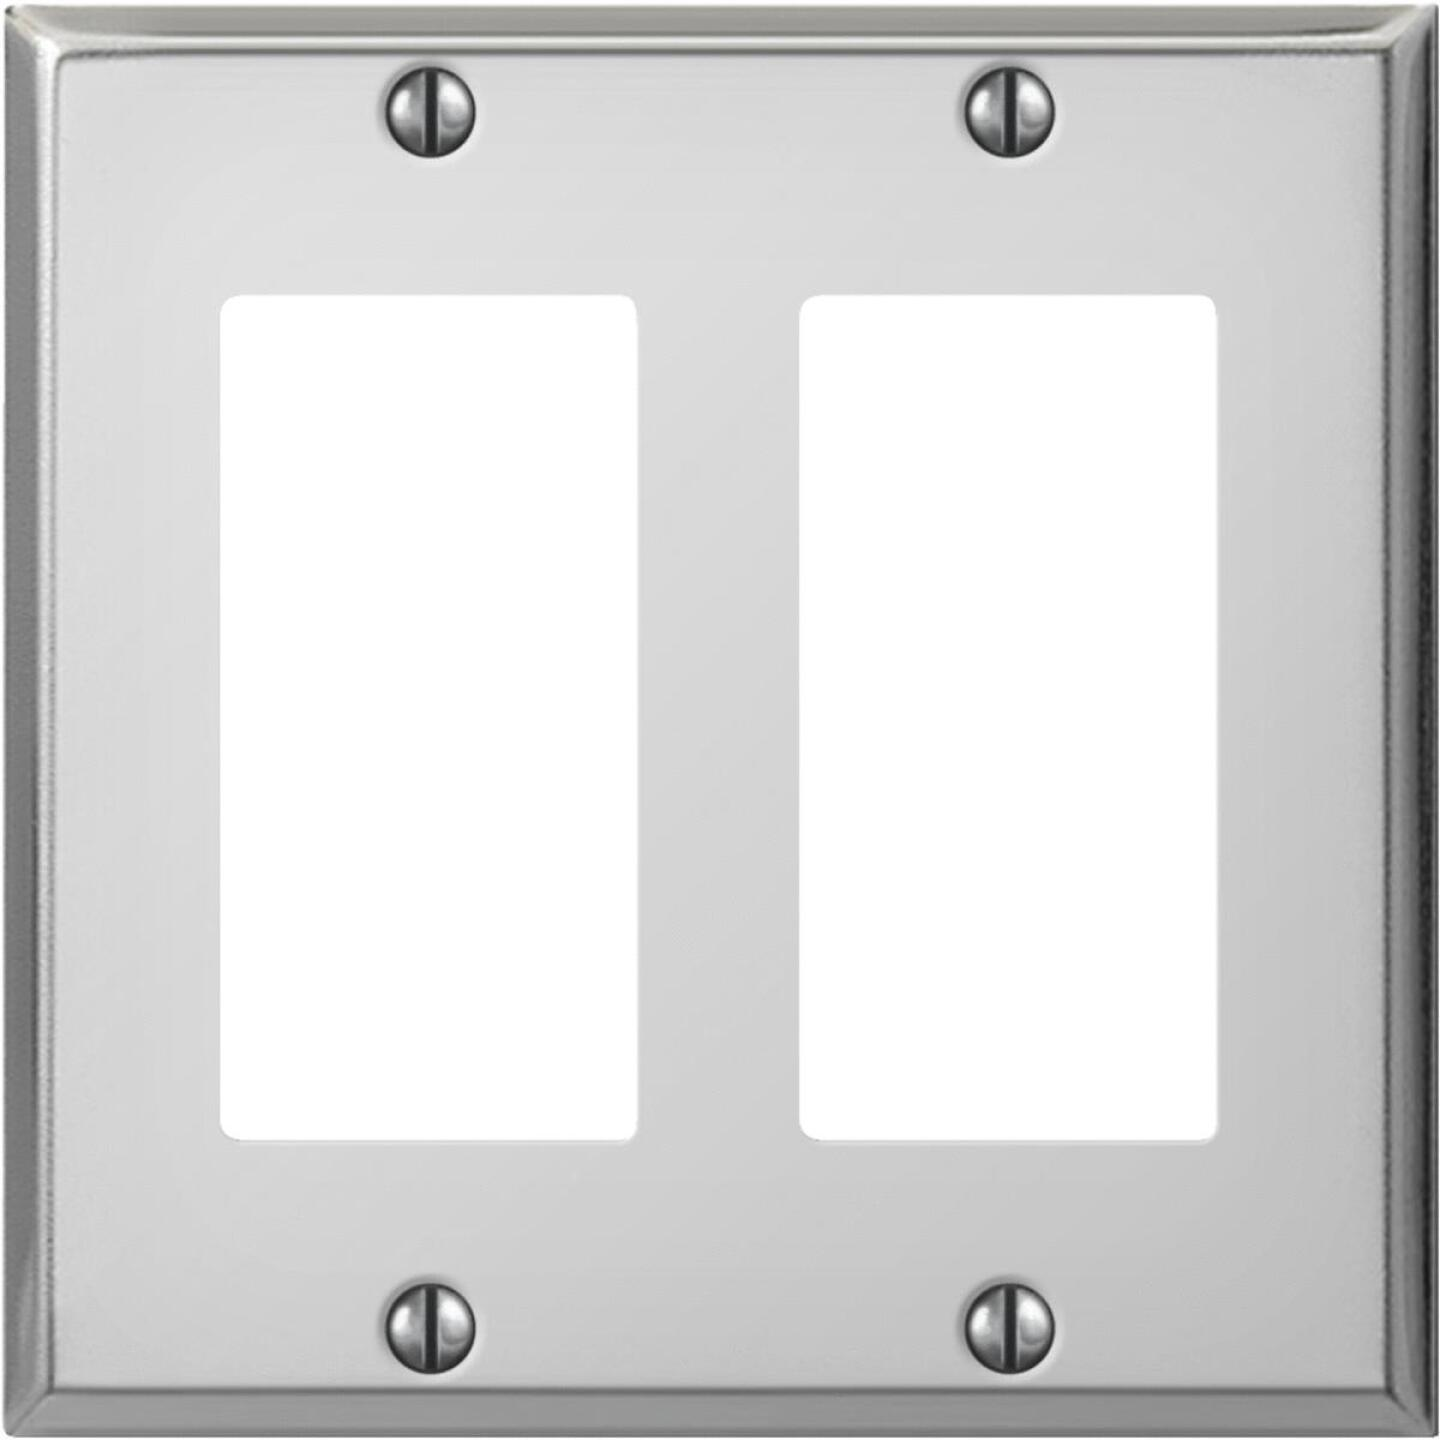 Amerelle PRO 2-Gang Stamped Steel Rocker Decorator Wall Plate, Polished Chrome Image 1